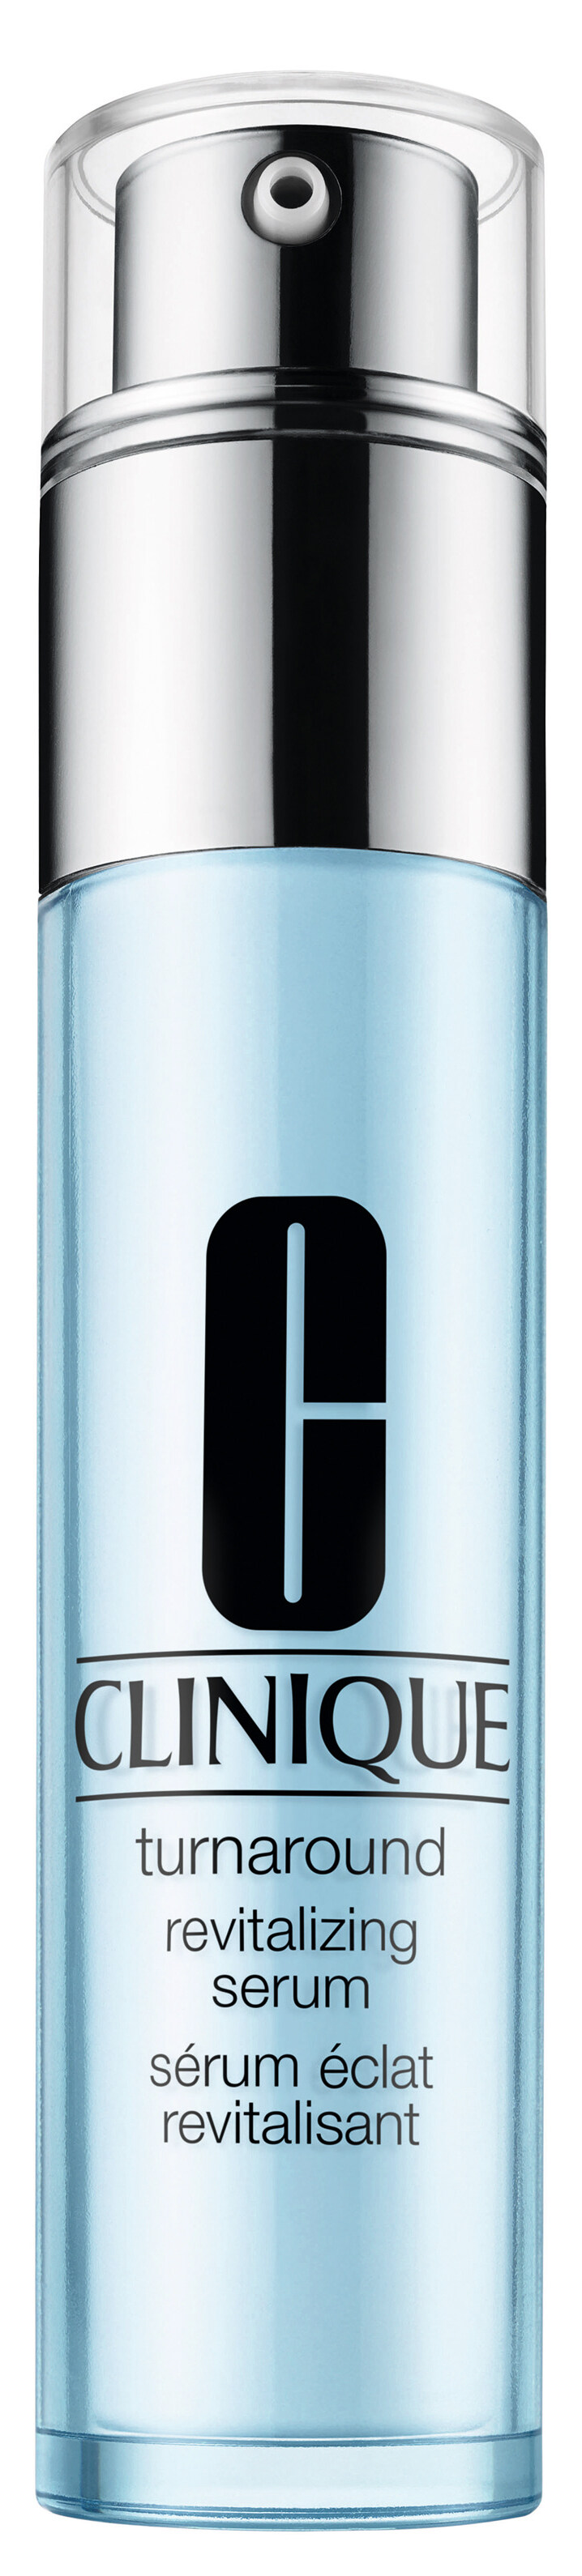 Clinique Turnaround Revitalizing Serum($380)